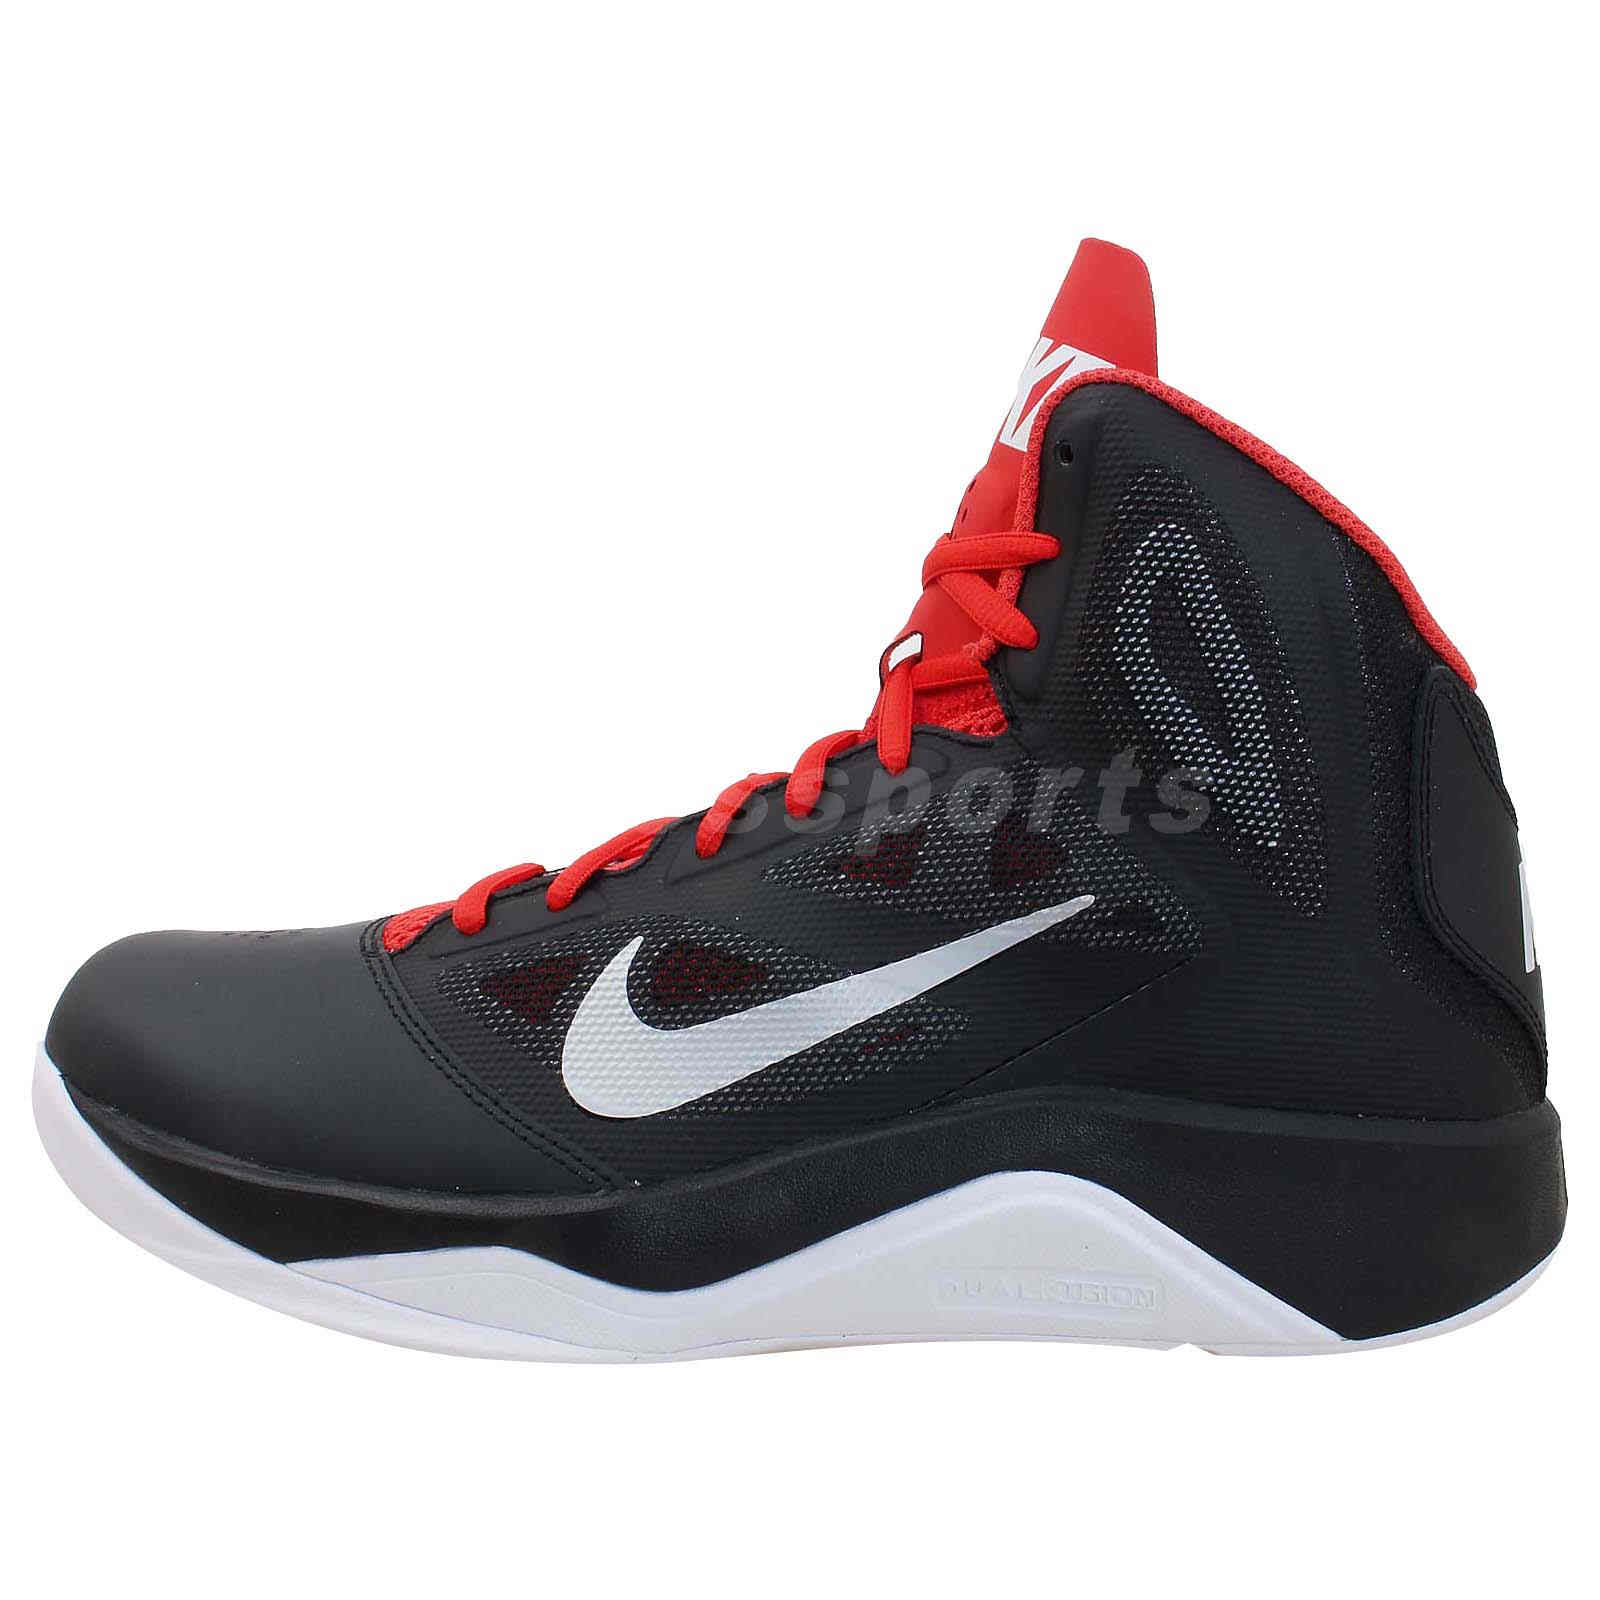 Pix For New Nike Basketball Shoes 2014